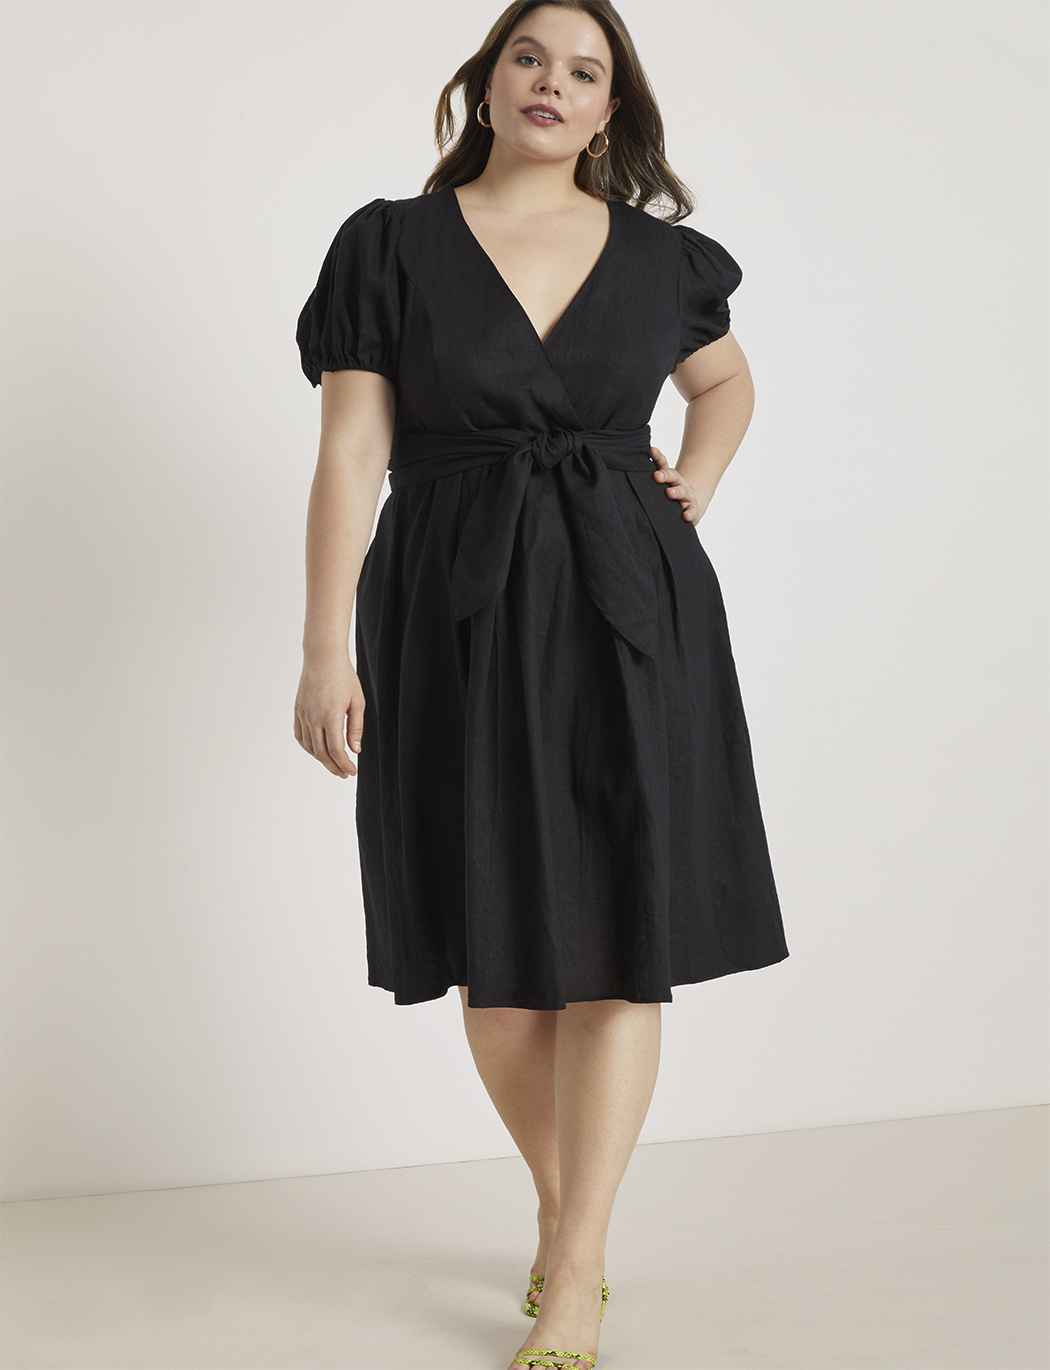 Tie Front Linen Fit and Flare Dress | Women\'s Plus Size Dresses | ELOQUII